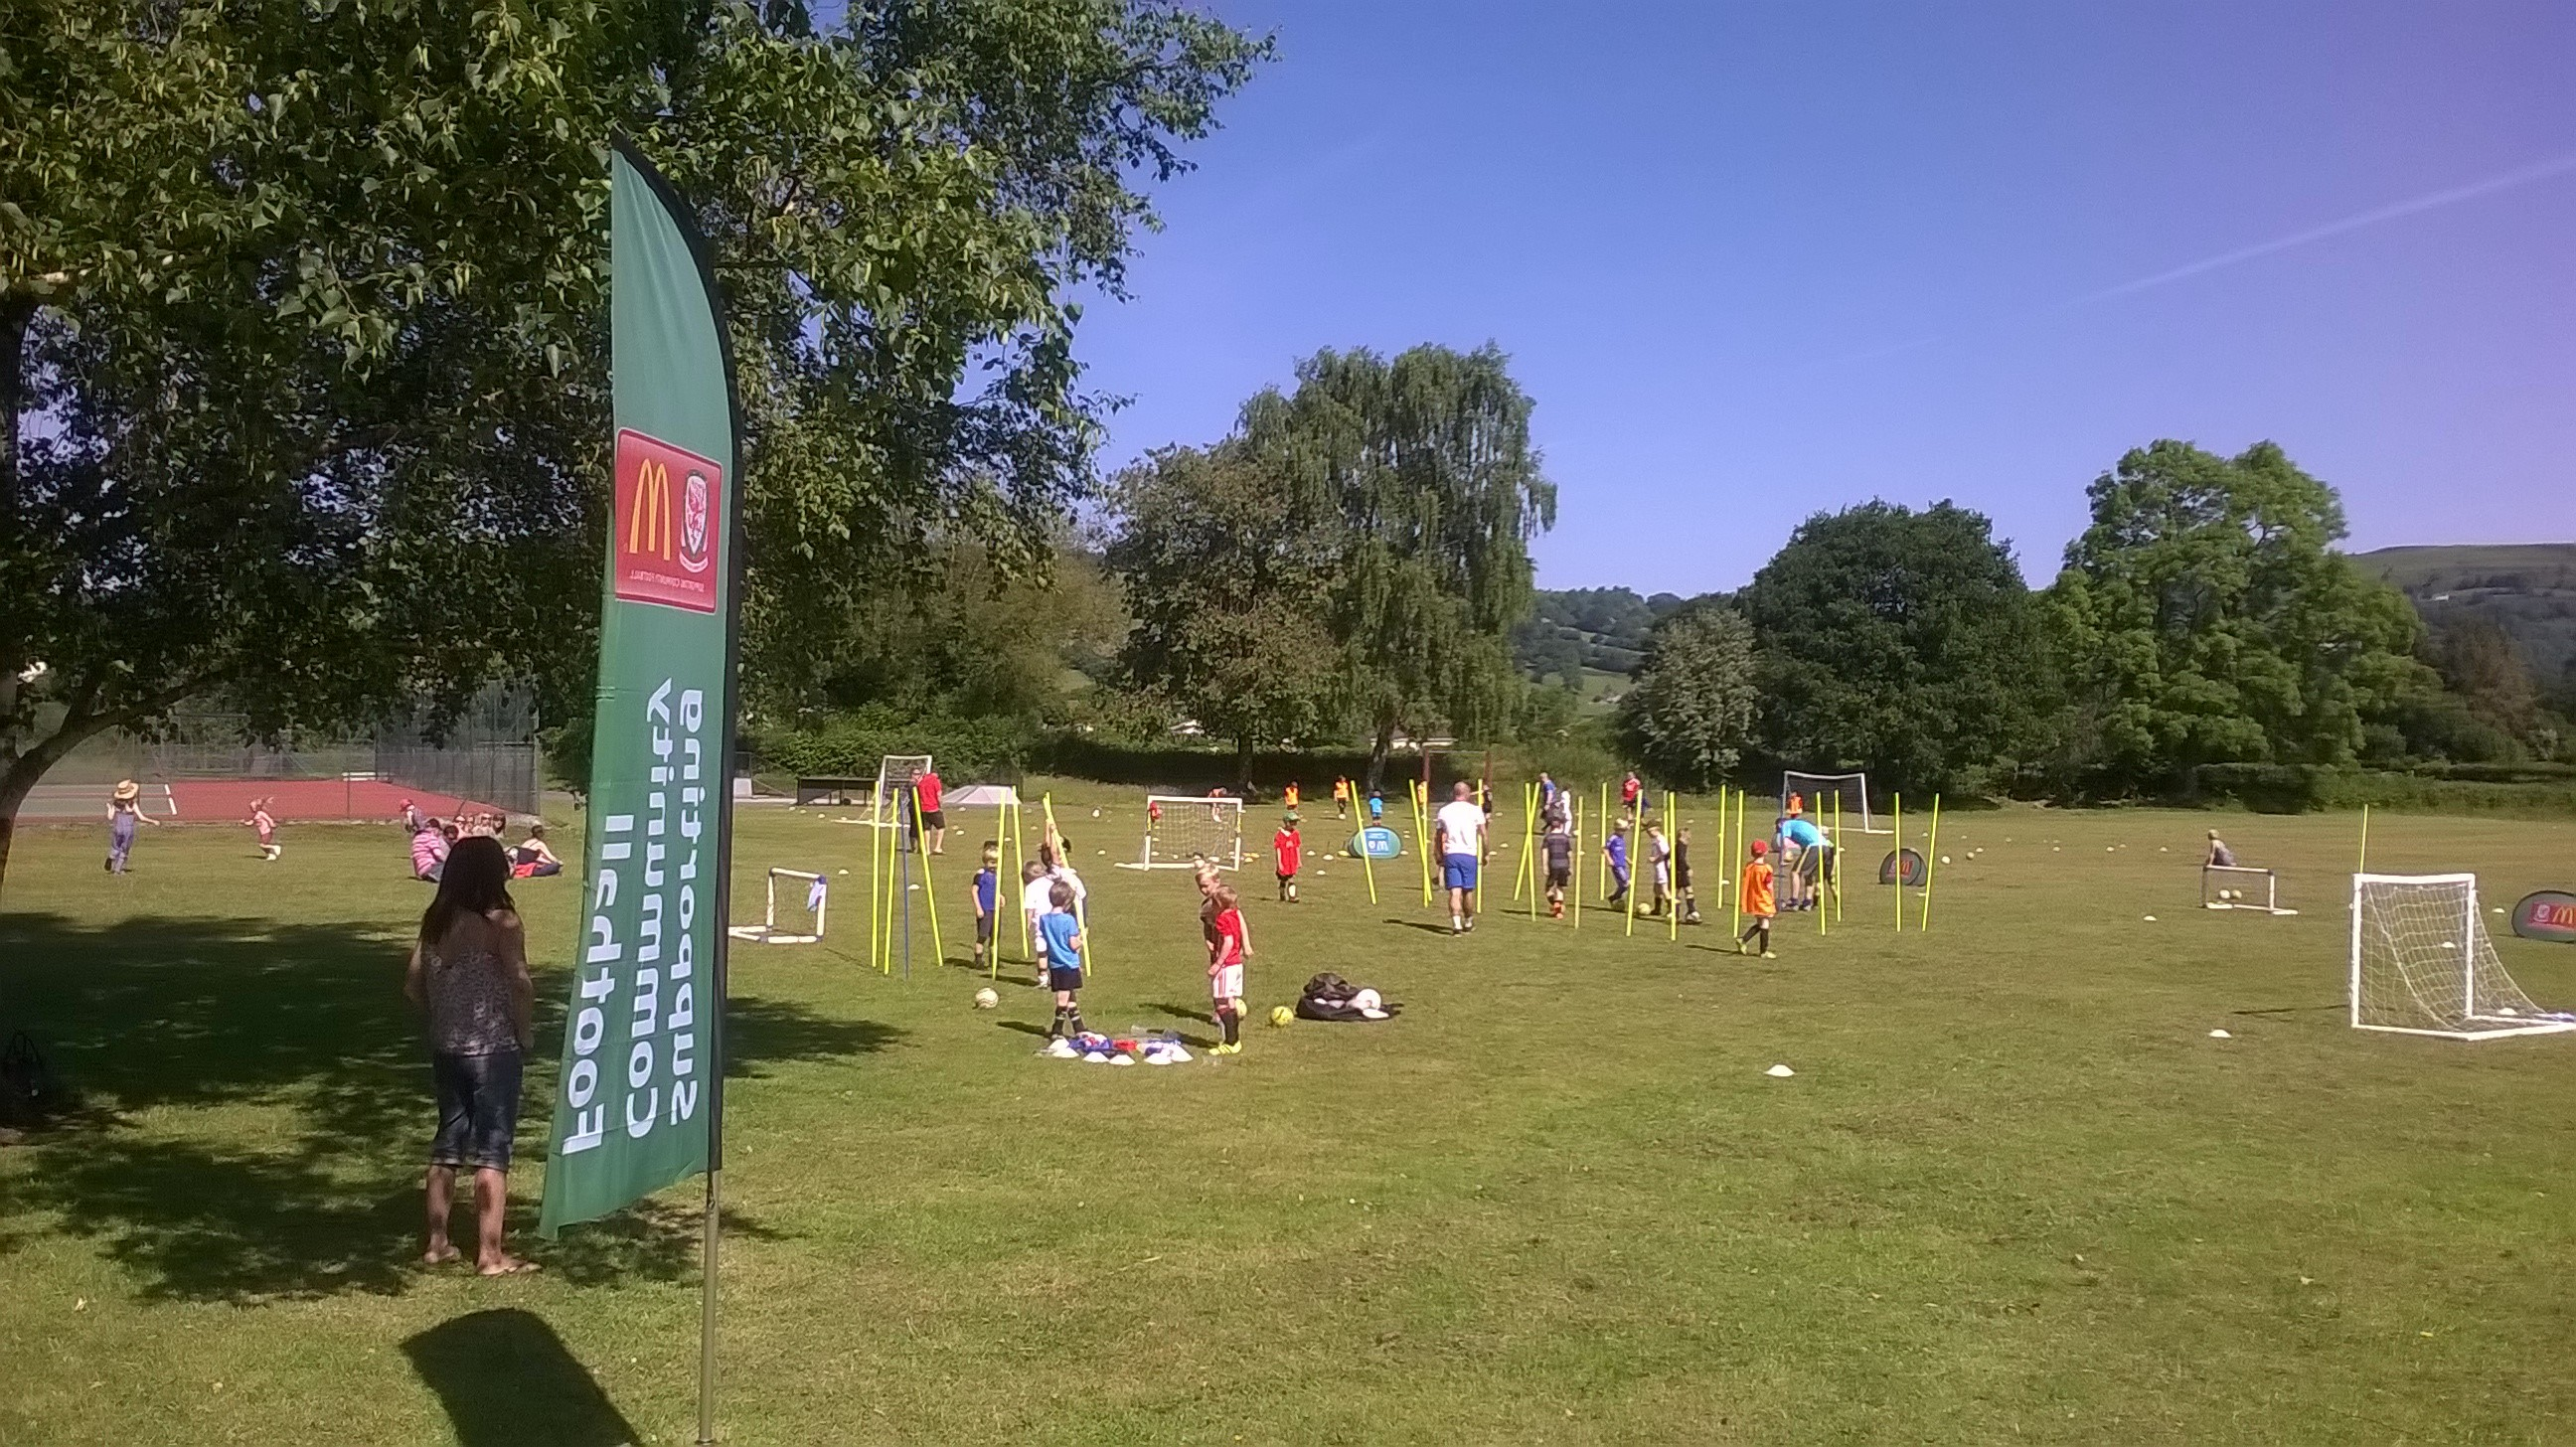 Llangynidr JFC aim to grow after successful McDonald's Community Football Day